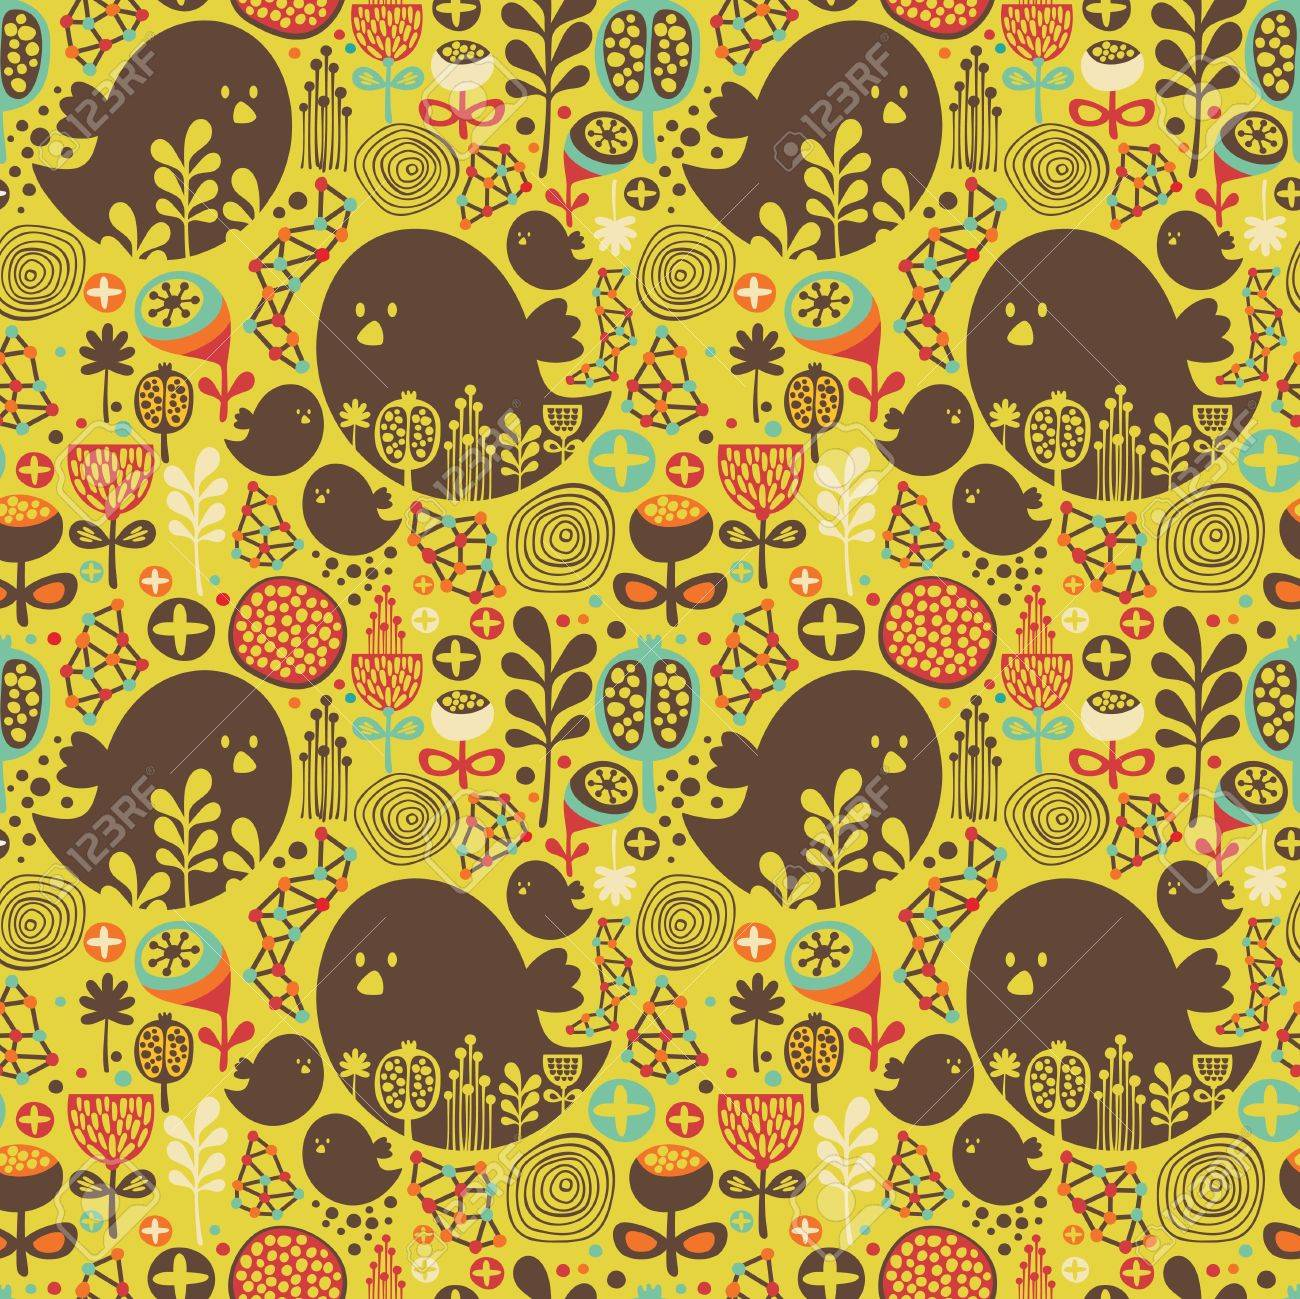 Seamless pattern with birds, flowers and geometric elements illustration Stock Vector - 21418696